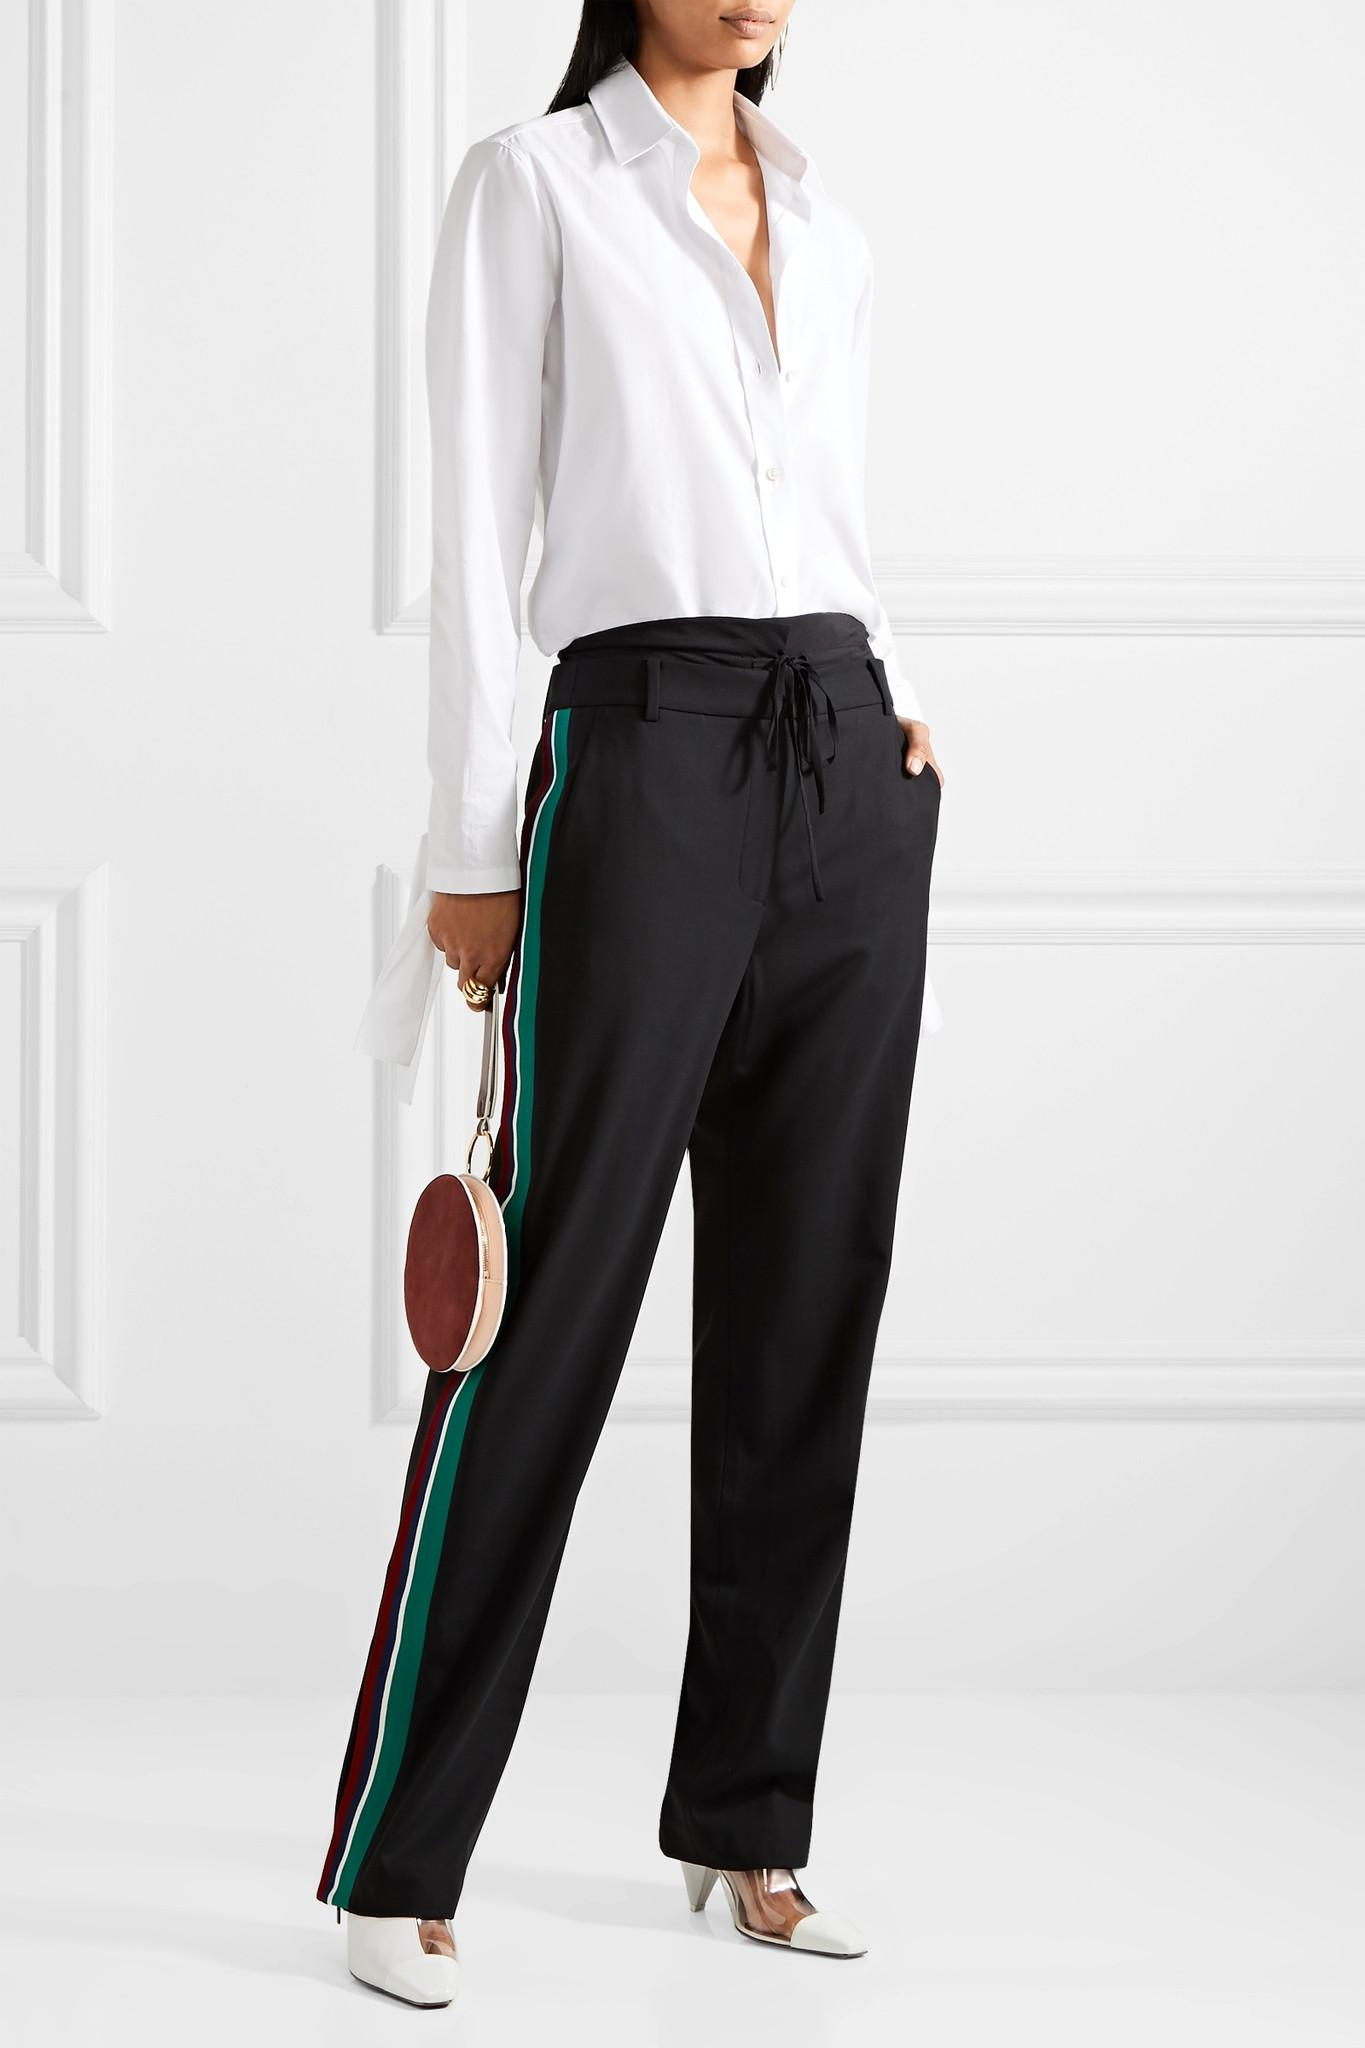 Nicekicks From China Online Dempsey Striped Silk-trimmed Crepe Straight-leg Pants - Black Tibi Great Deals Outlet Clearance Store UoEUsdeJJY